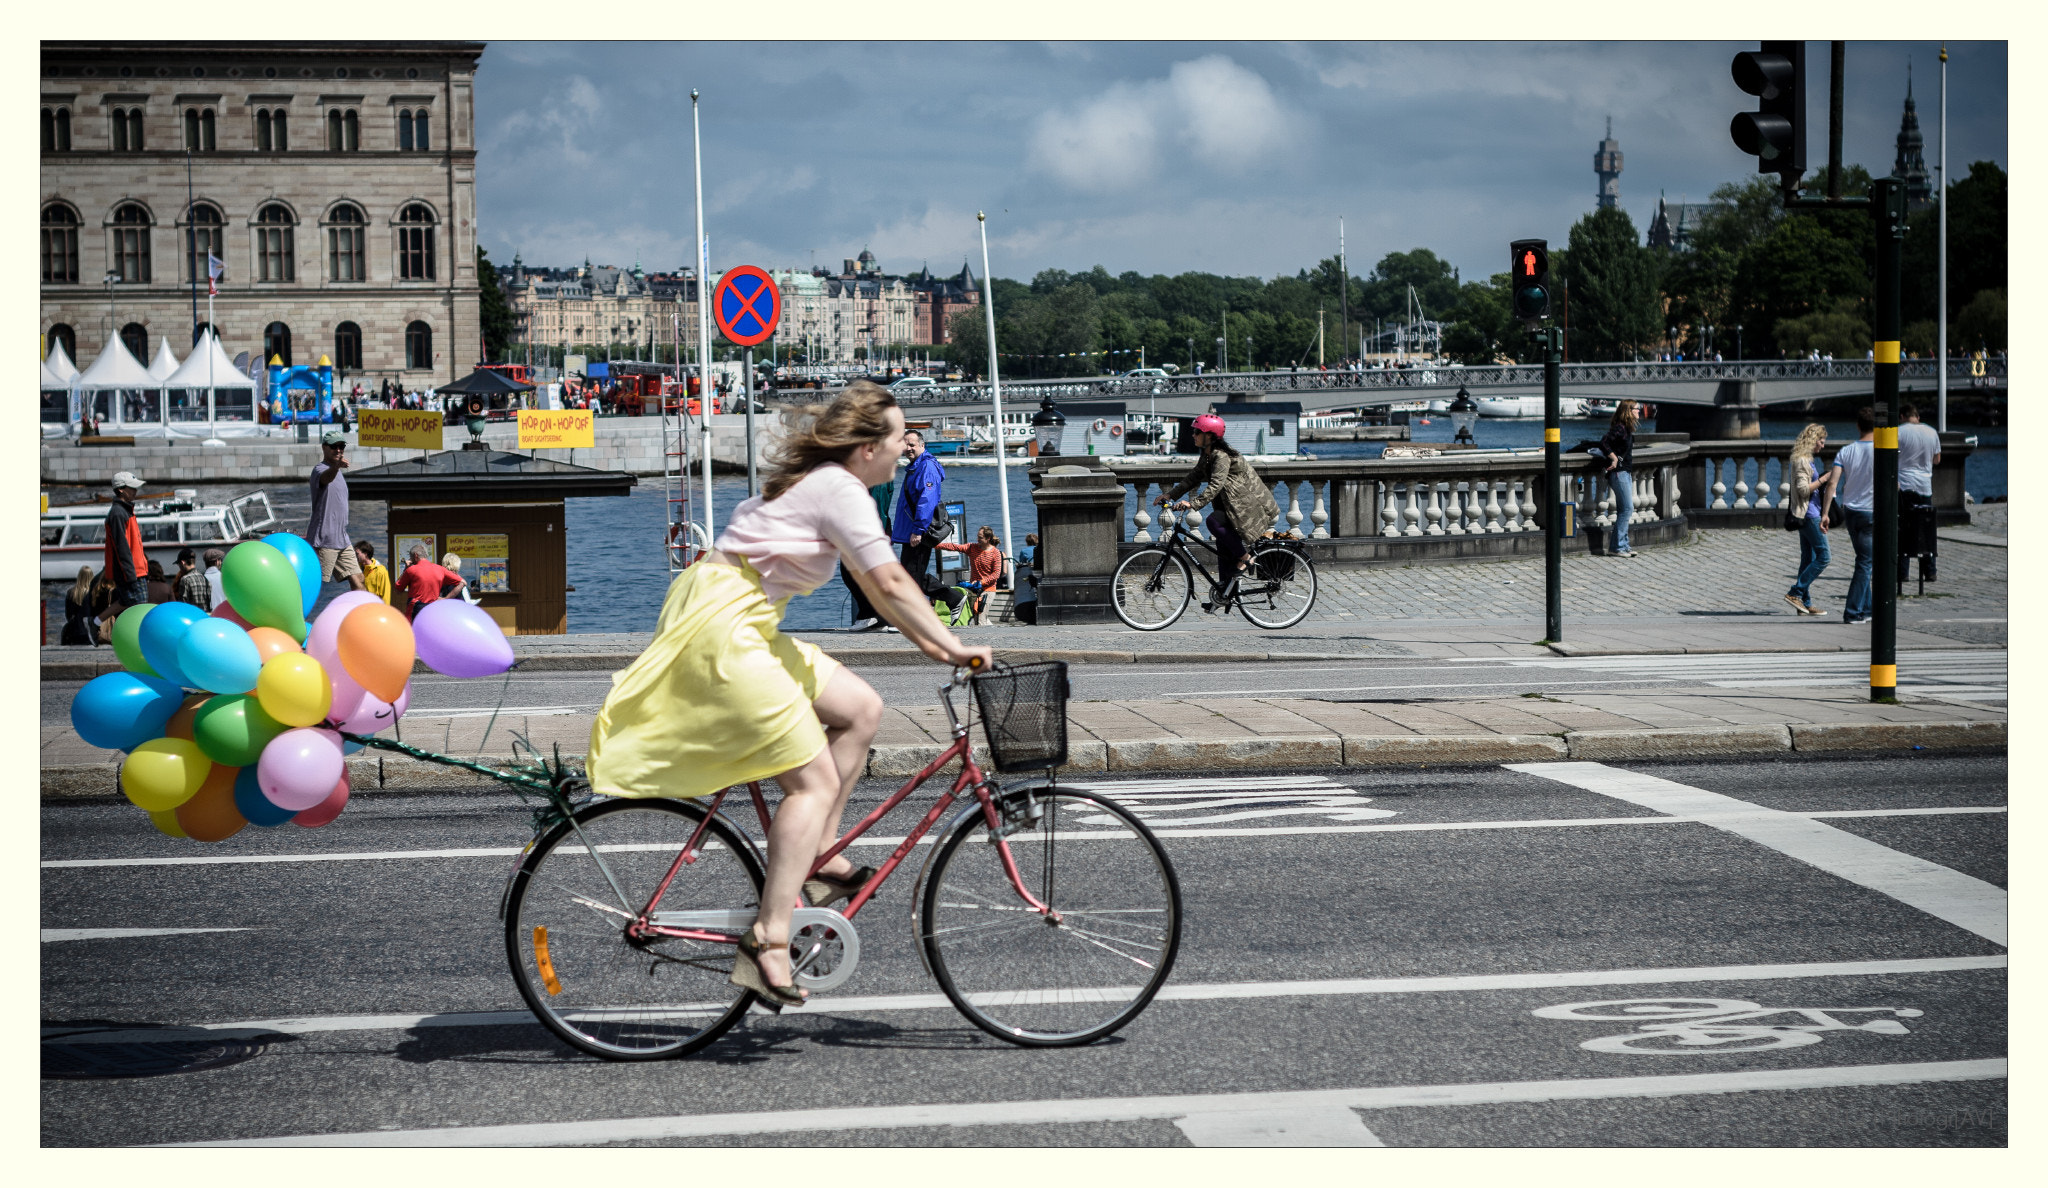 Photograph Colourful Stockholm by Peter Vruggink on 500px